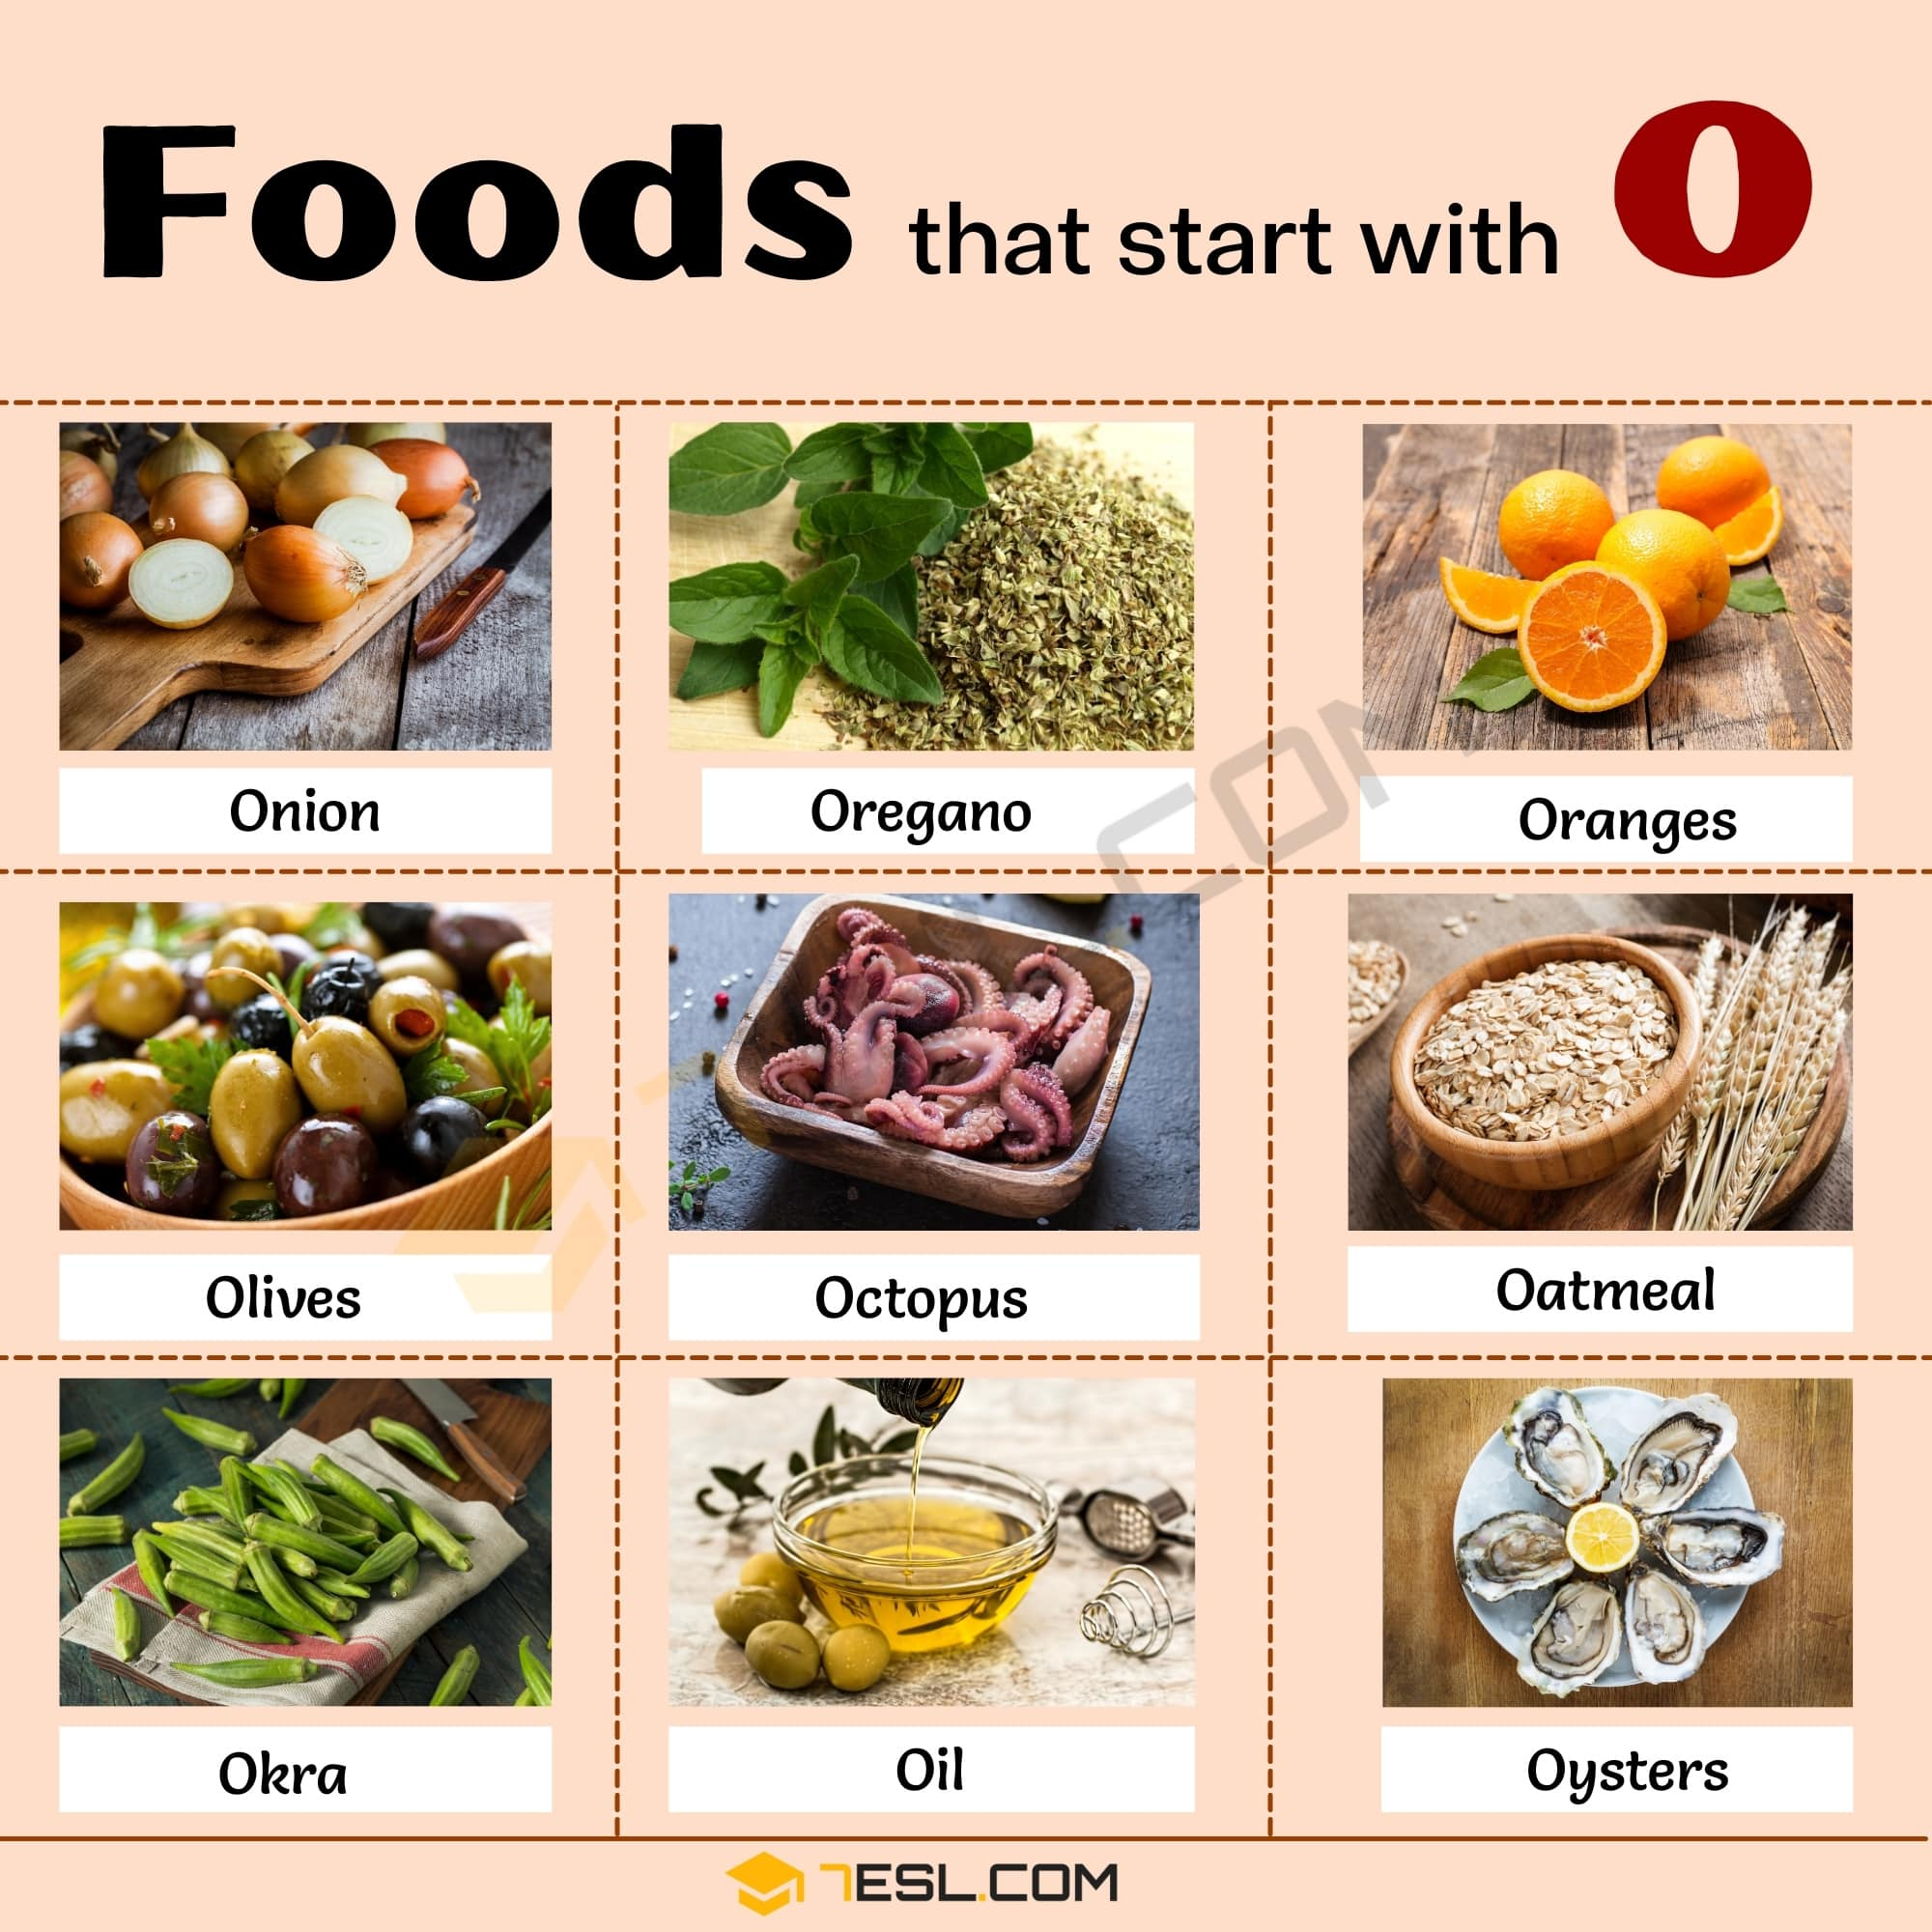 Foods that Start With O